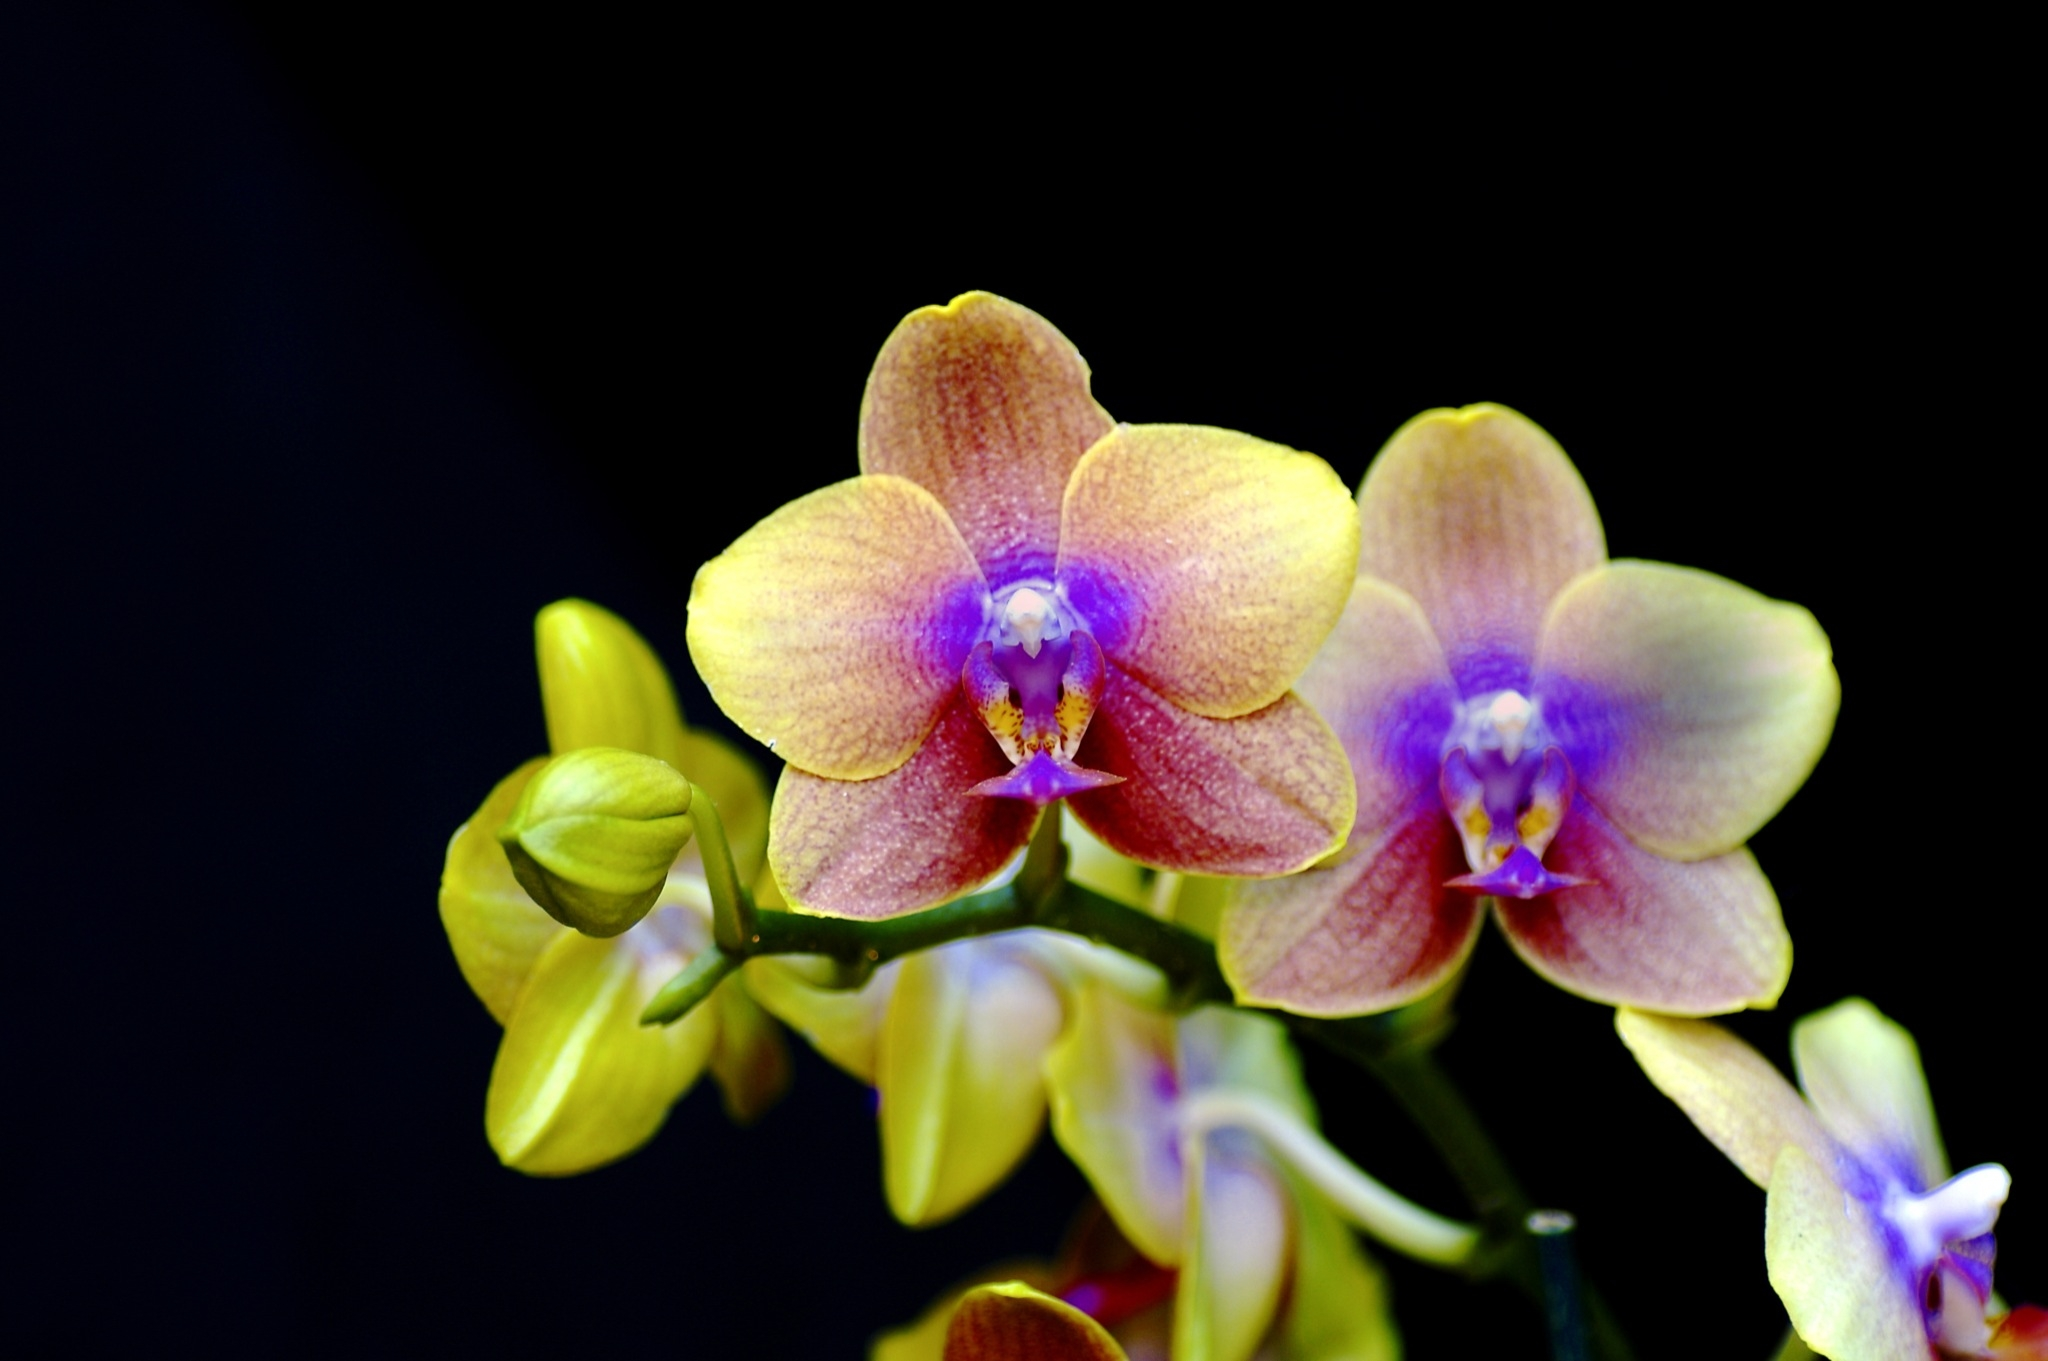 Orchids on display at the Krohn Conservatory of Cincinnati